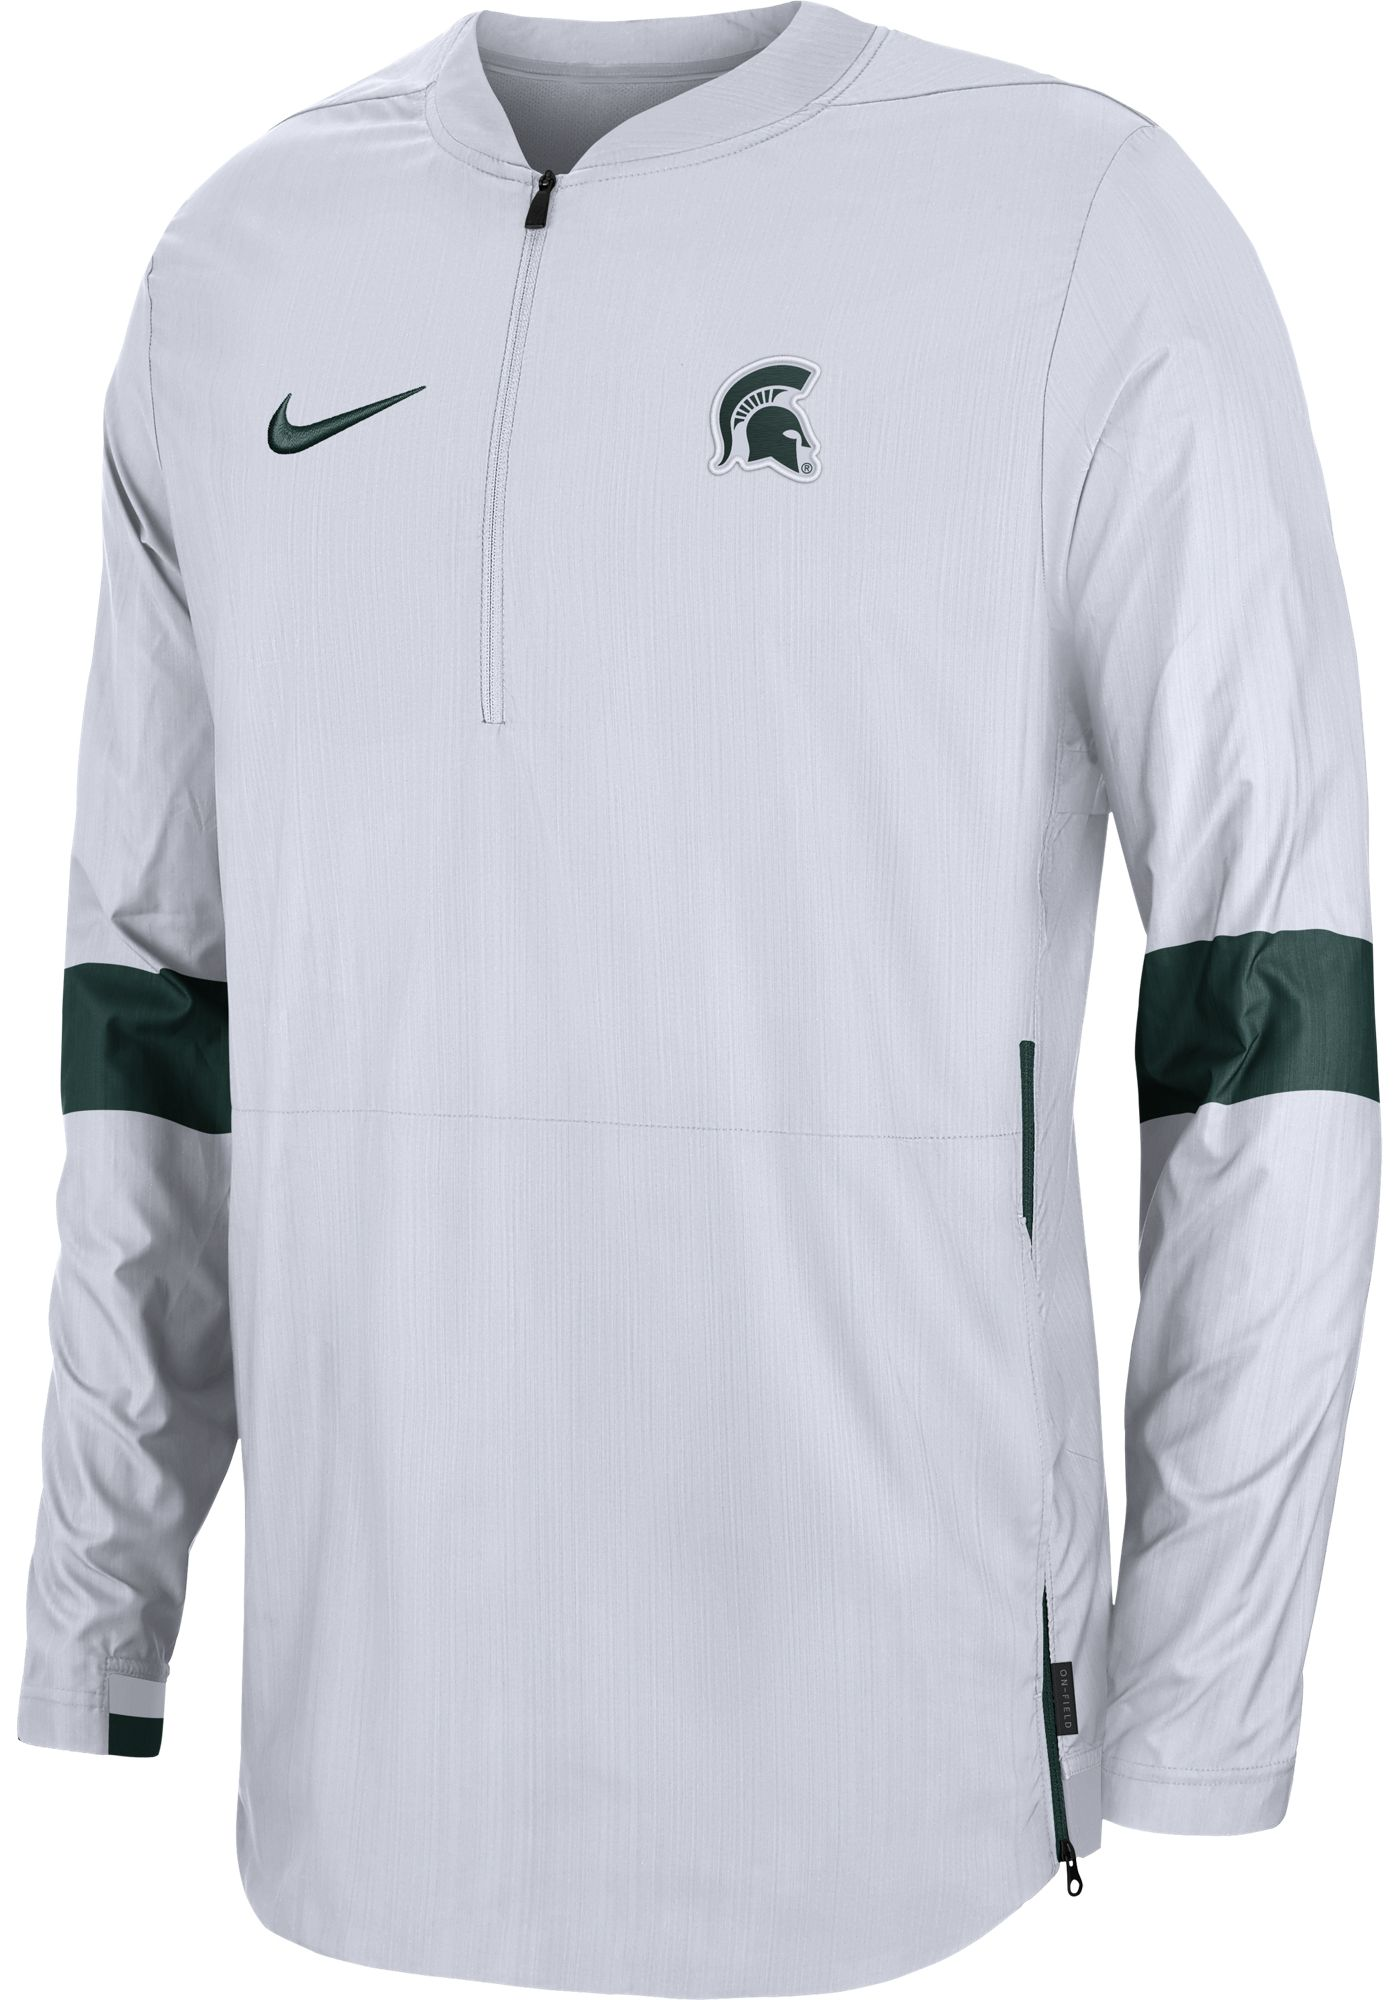 Nike Men's Michigan State Spartans Lockdown Half-Zip Football White Jacket